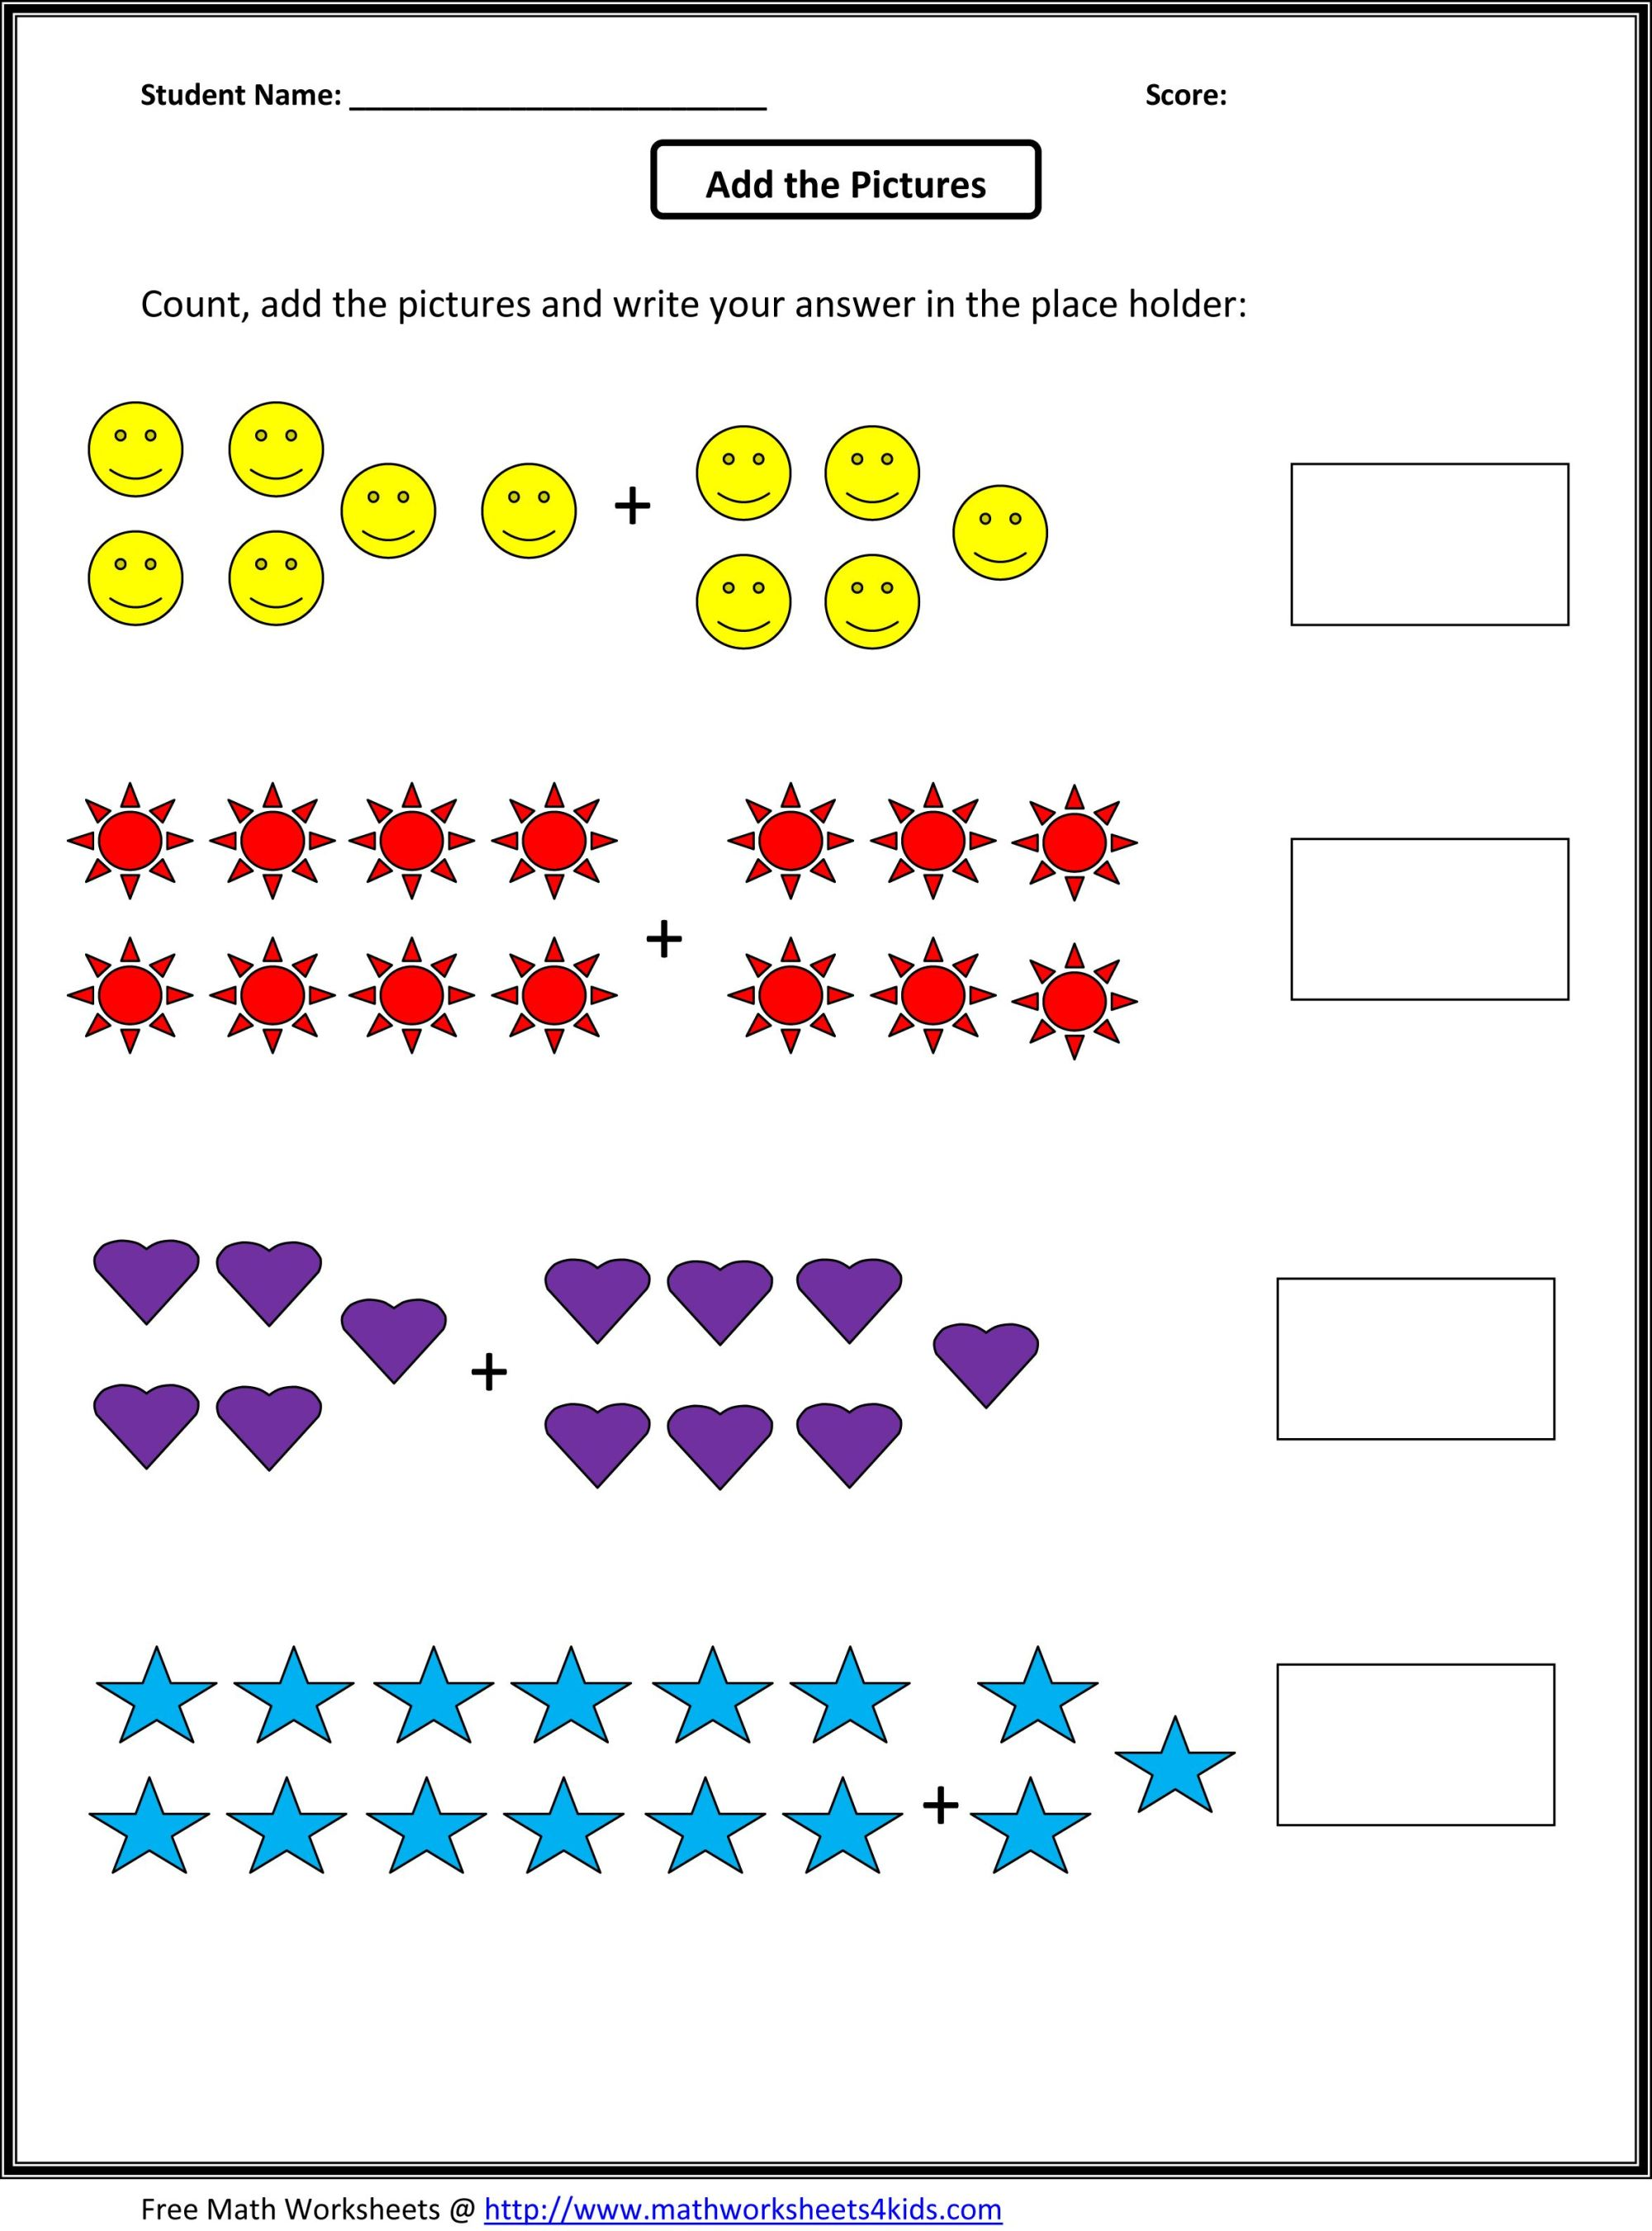 hight resolution of Grade 1 Addition Math Worksheets   First Grade Math on Worksheets Ideas 4580